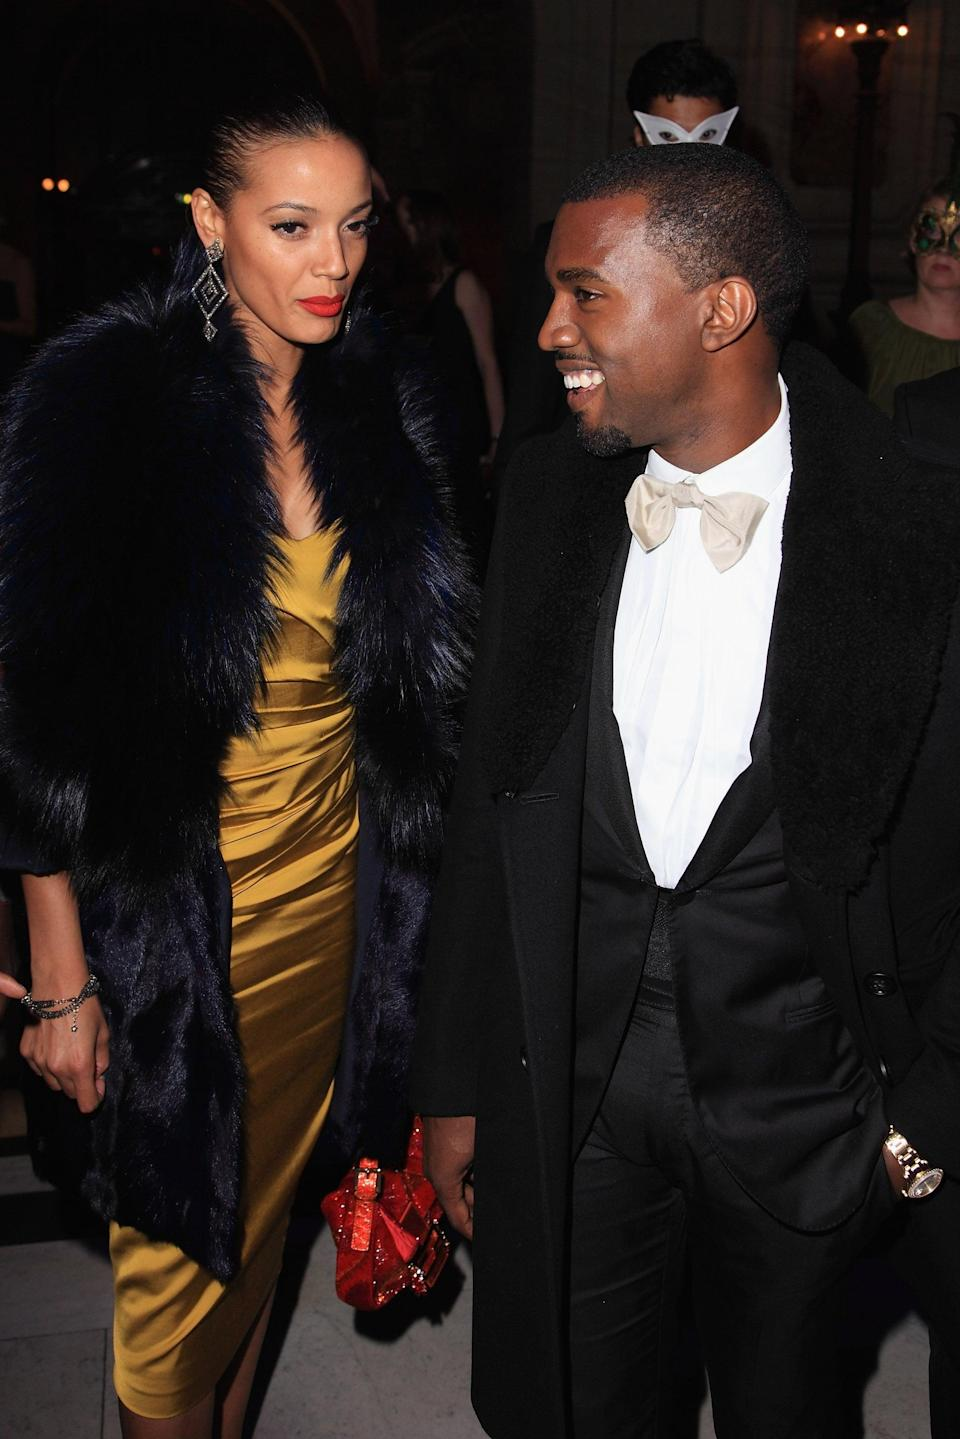 """<p>For a few months toward the end of 2010, Kanye and model Selita Ebanks were rumored to have hooked up. The former Victoria's Secret Angel model is the star of his music video for """"Runaway,"""" and they were seen at Paris Fashion Week together and taking in a tennis match at the US Open.</p>"""